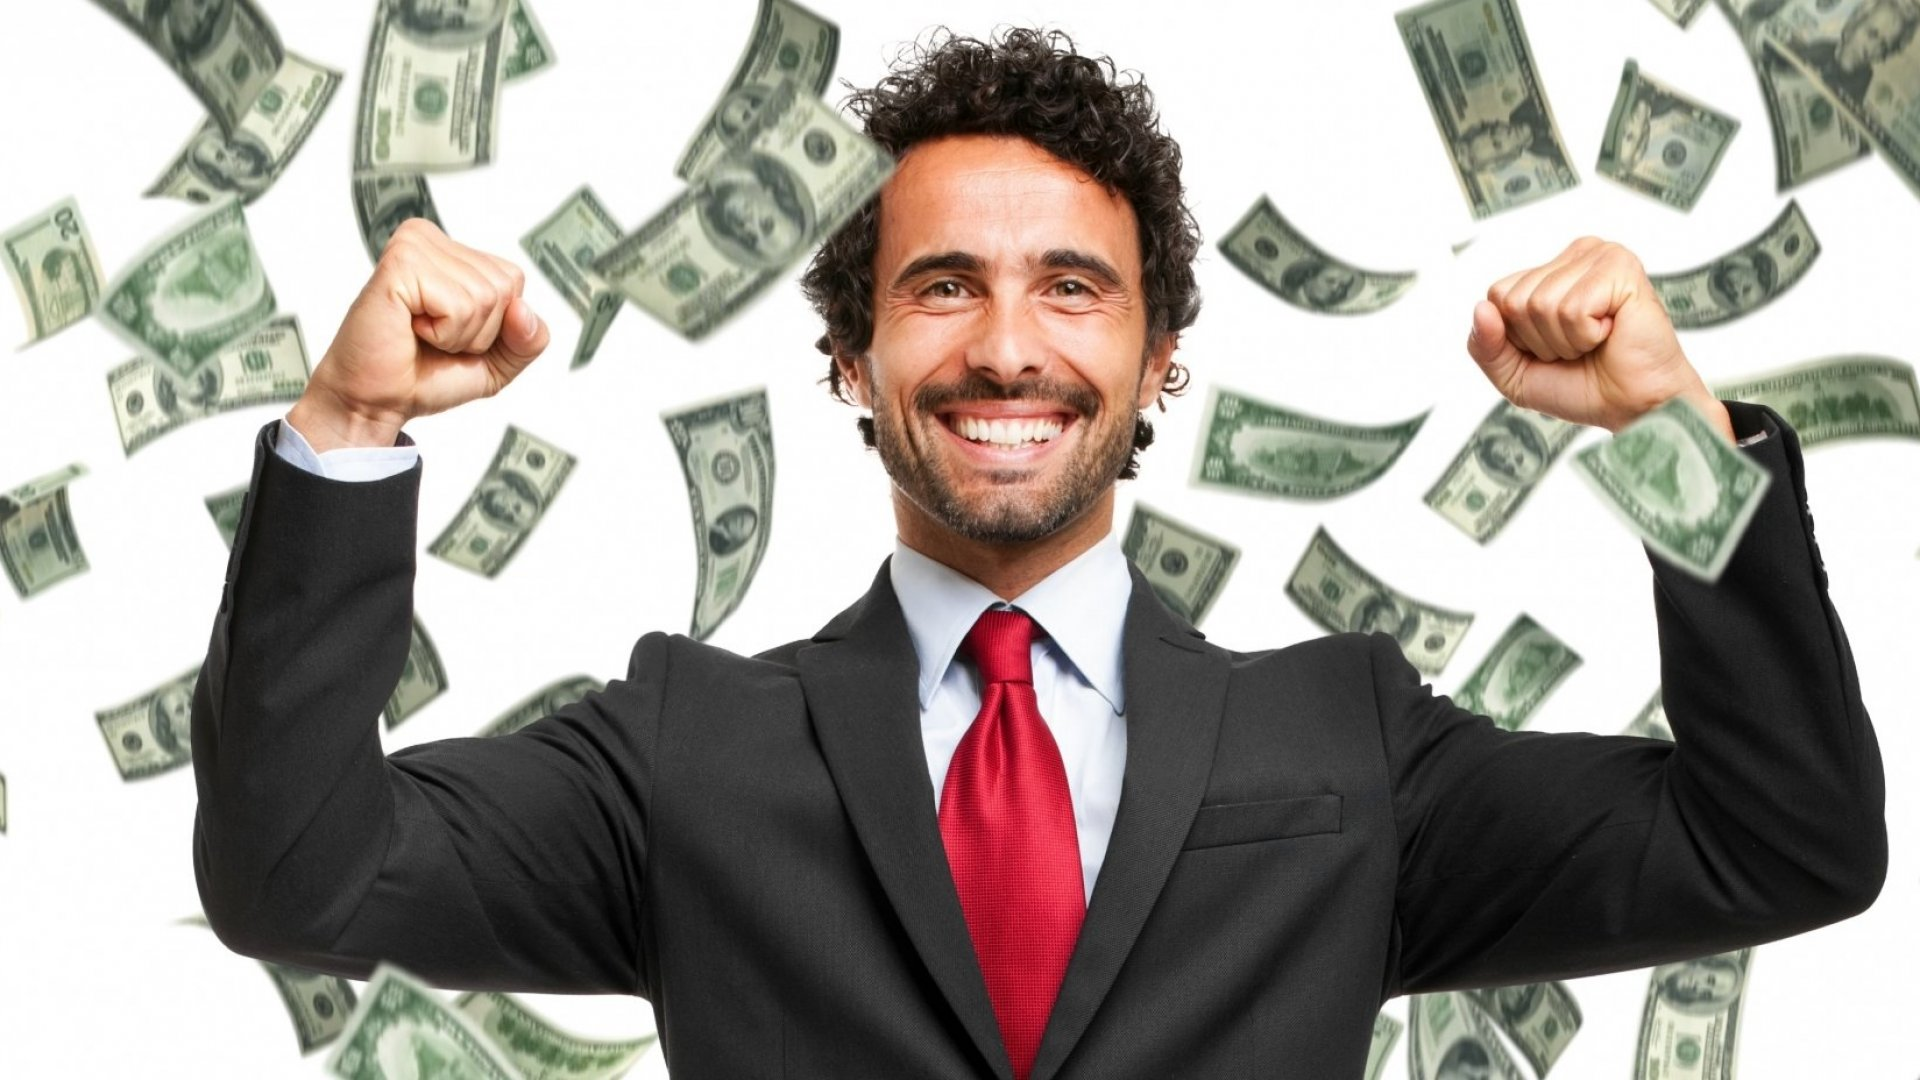 Millionaires Think Differently (and You Should, Too)